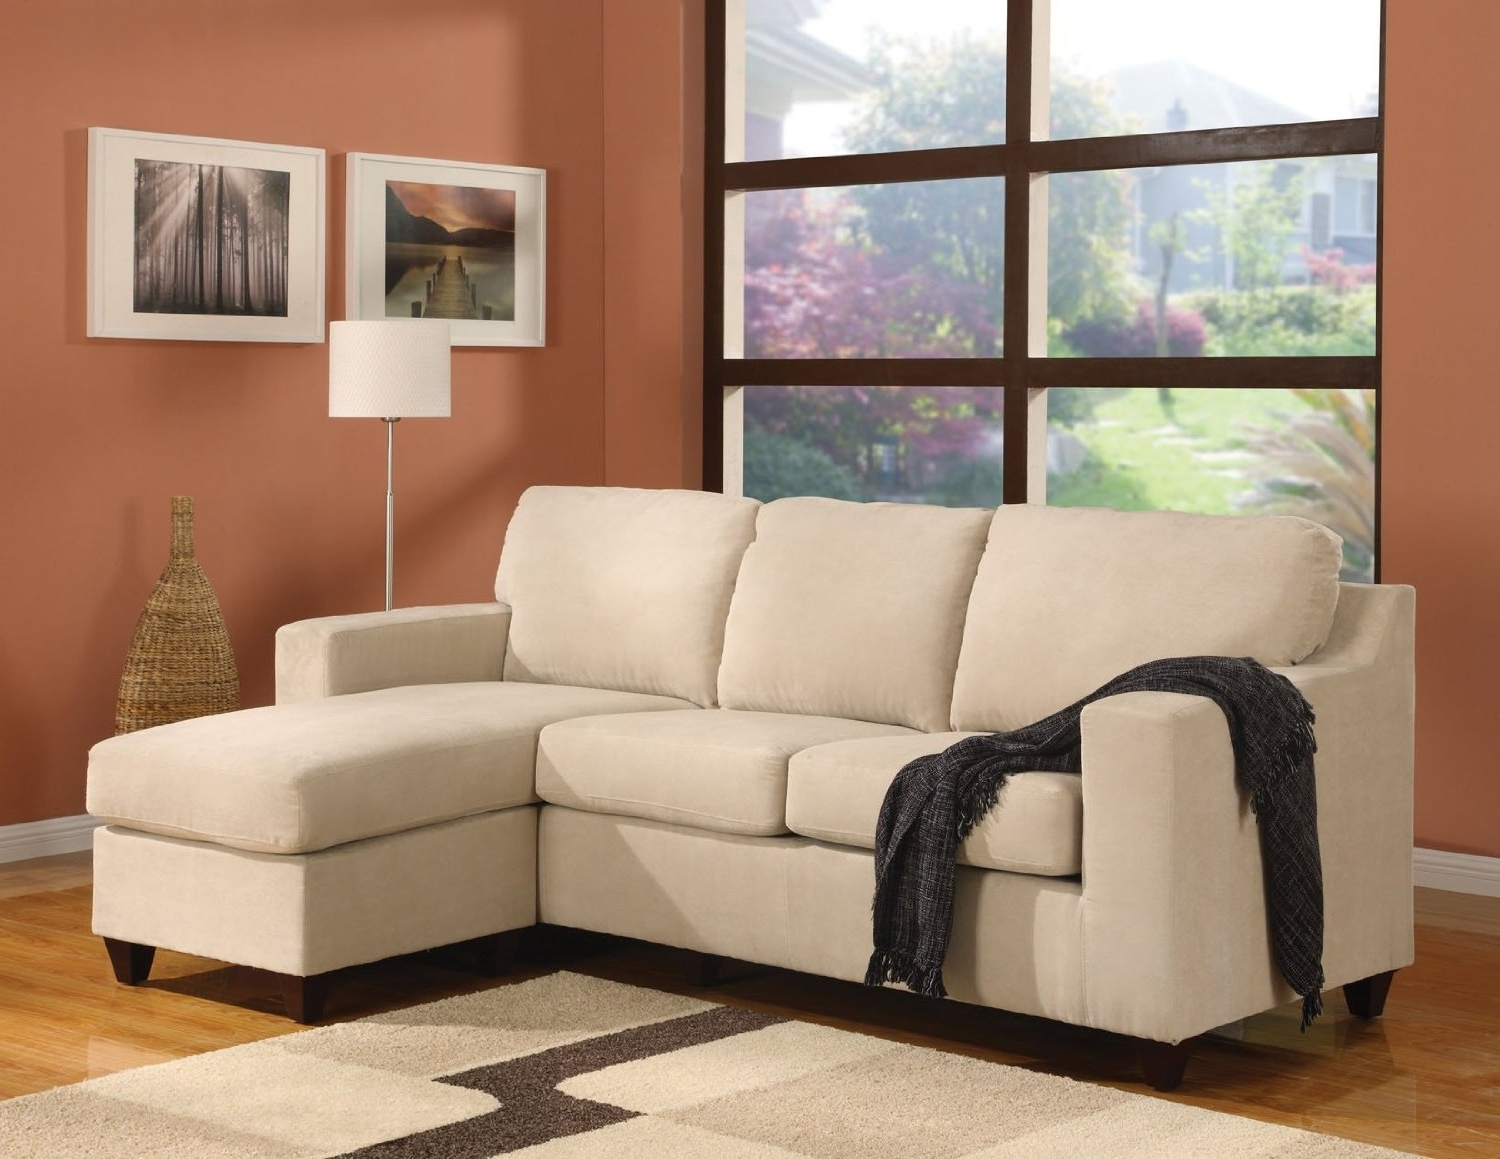 Best And Newest Sectionals With Reversible Chaise With Regard To Awesome Small Sectional Sofa With Chaise Lounge Chairs (View 11 of 15)